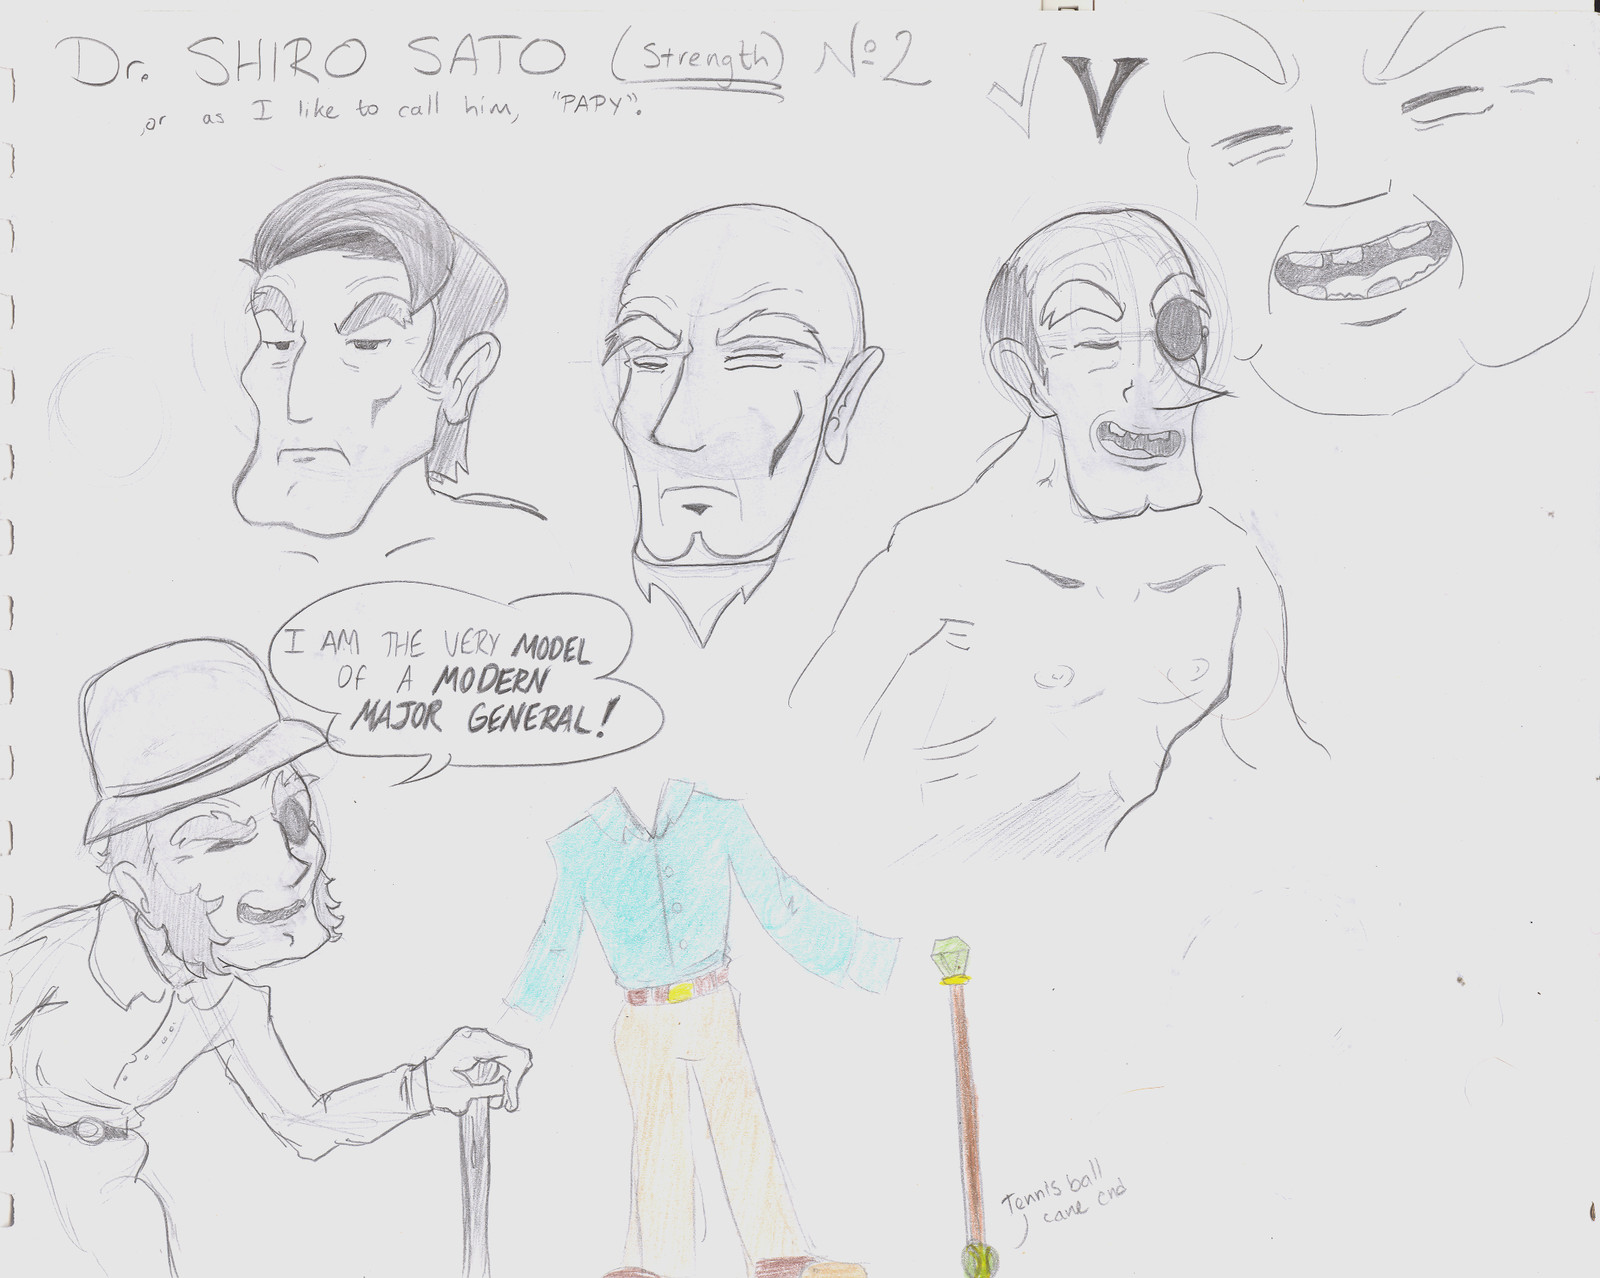 Concept art for a man character. Designed for a video game.